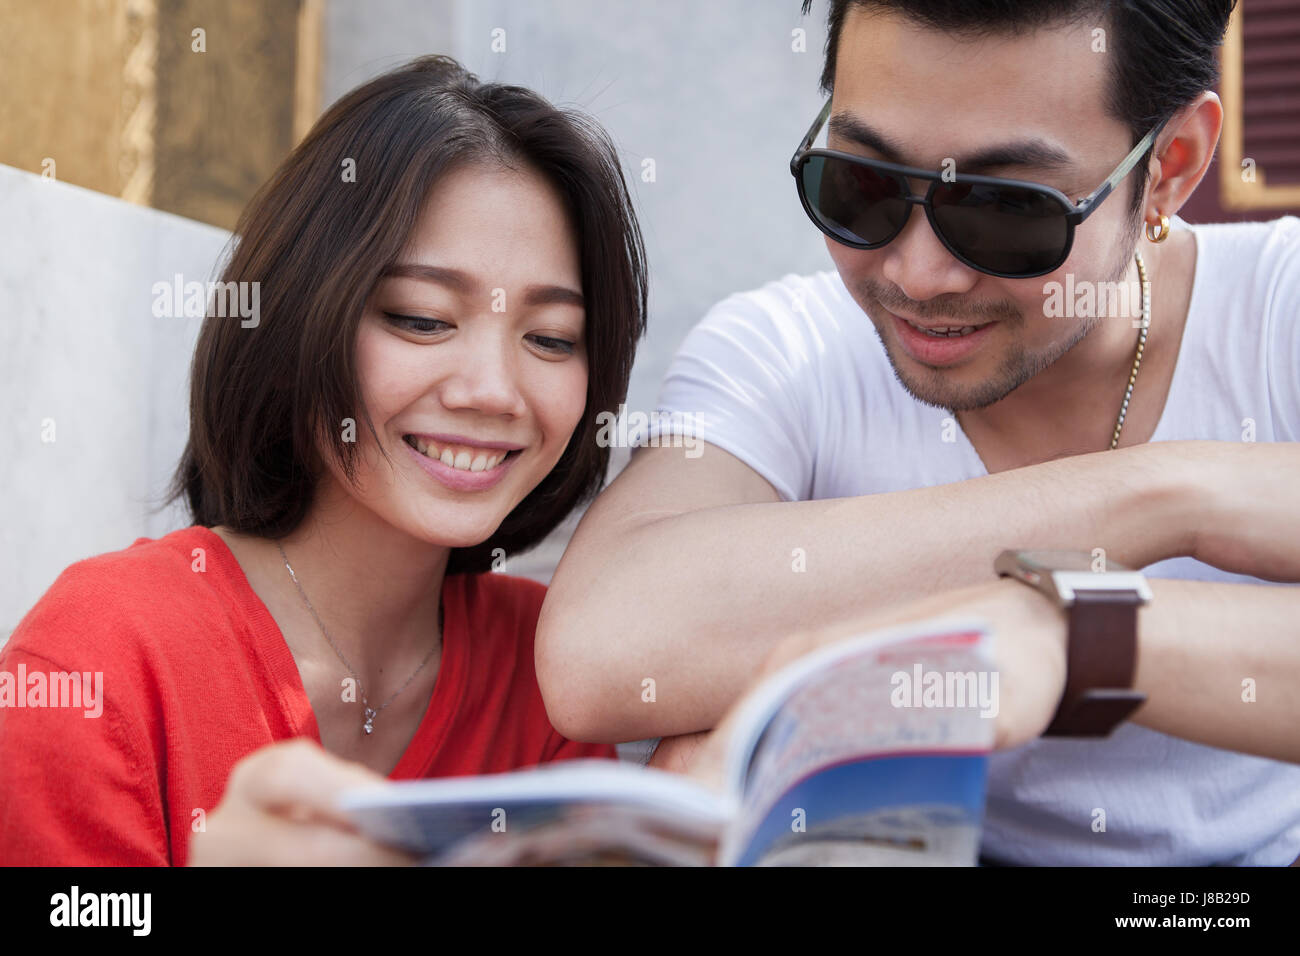 couples of asian younger traveling man and woman reading a guide book with happiness face toothy smile - Stock Image